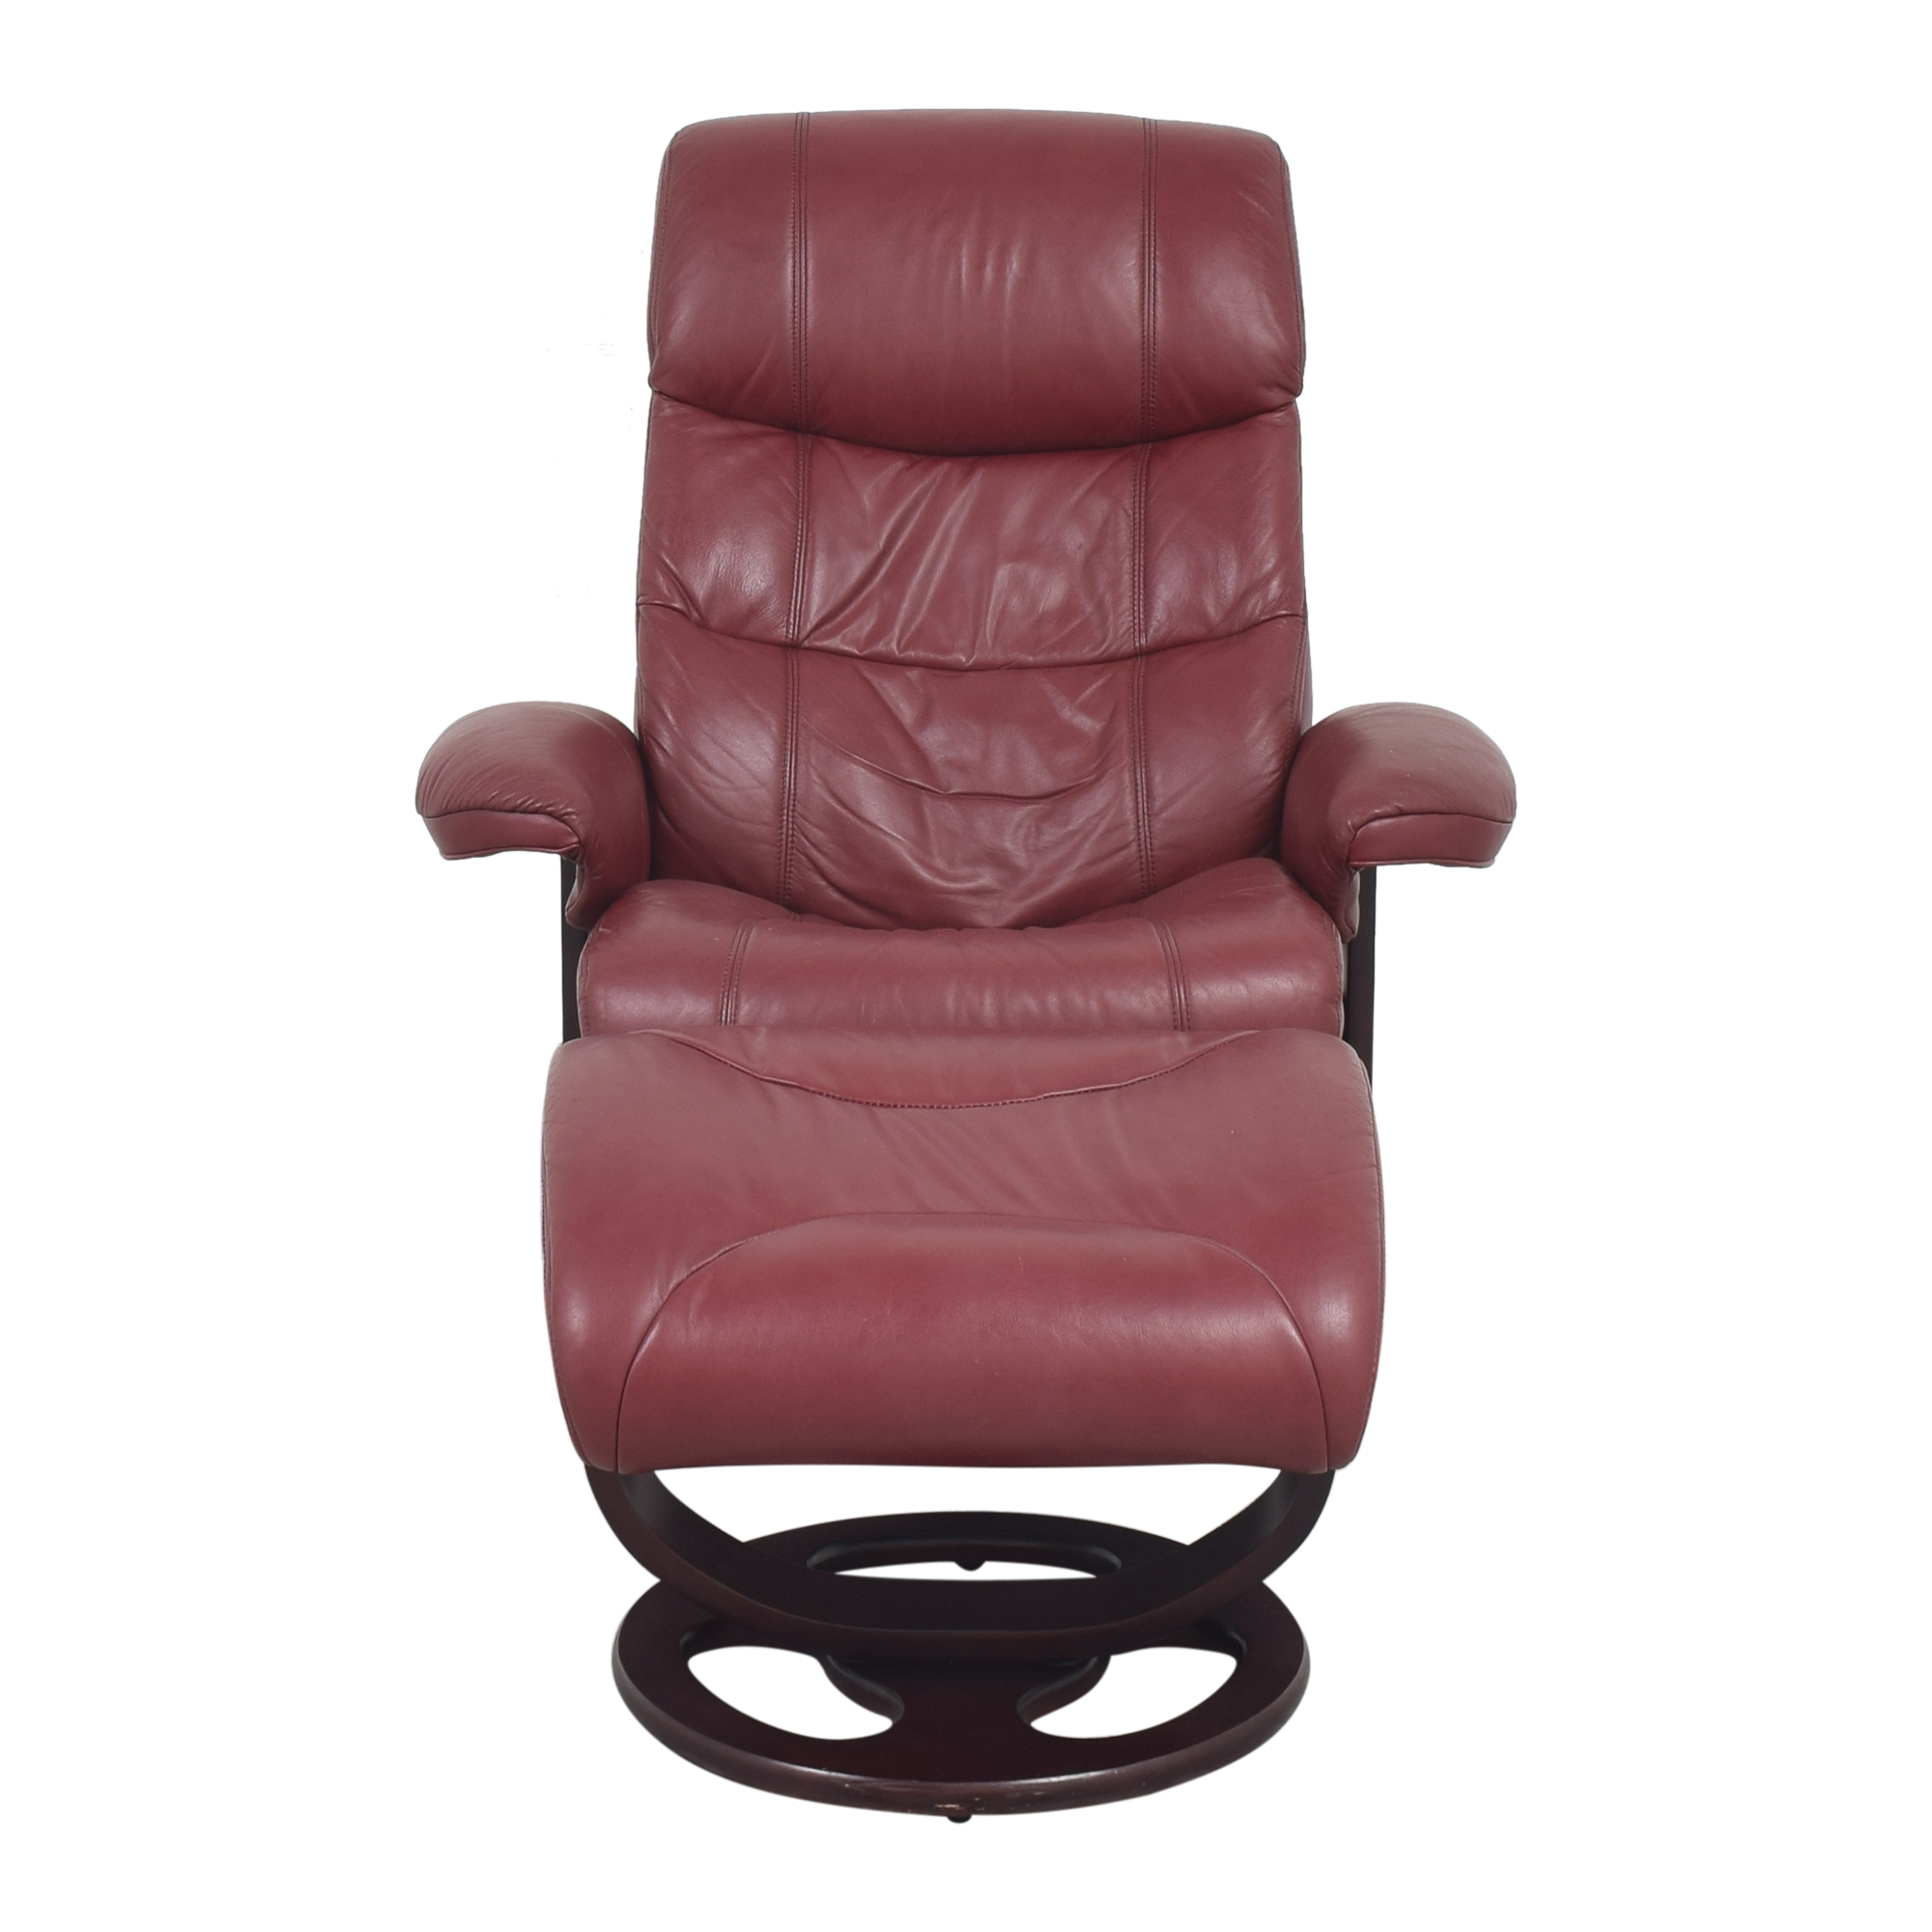 buy Lane Furniture Lane Furniture Rebel Recliner Chair and Ottoman online